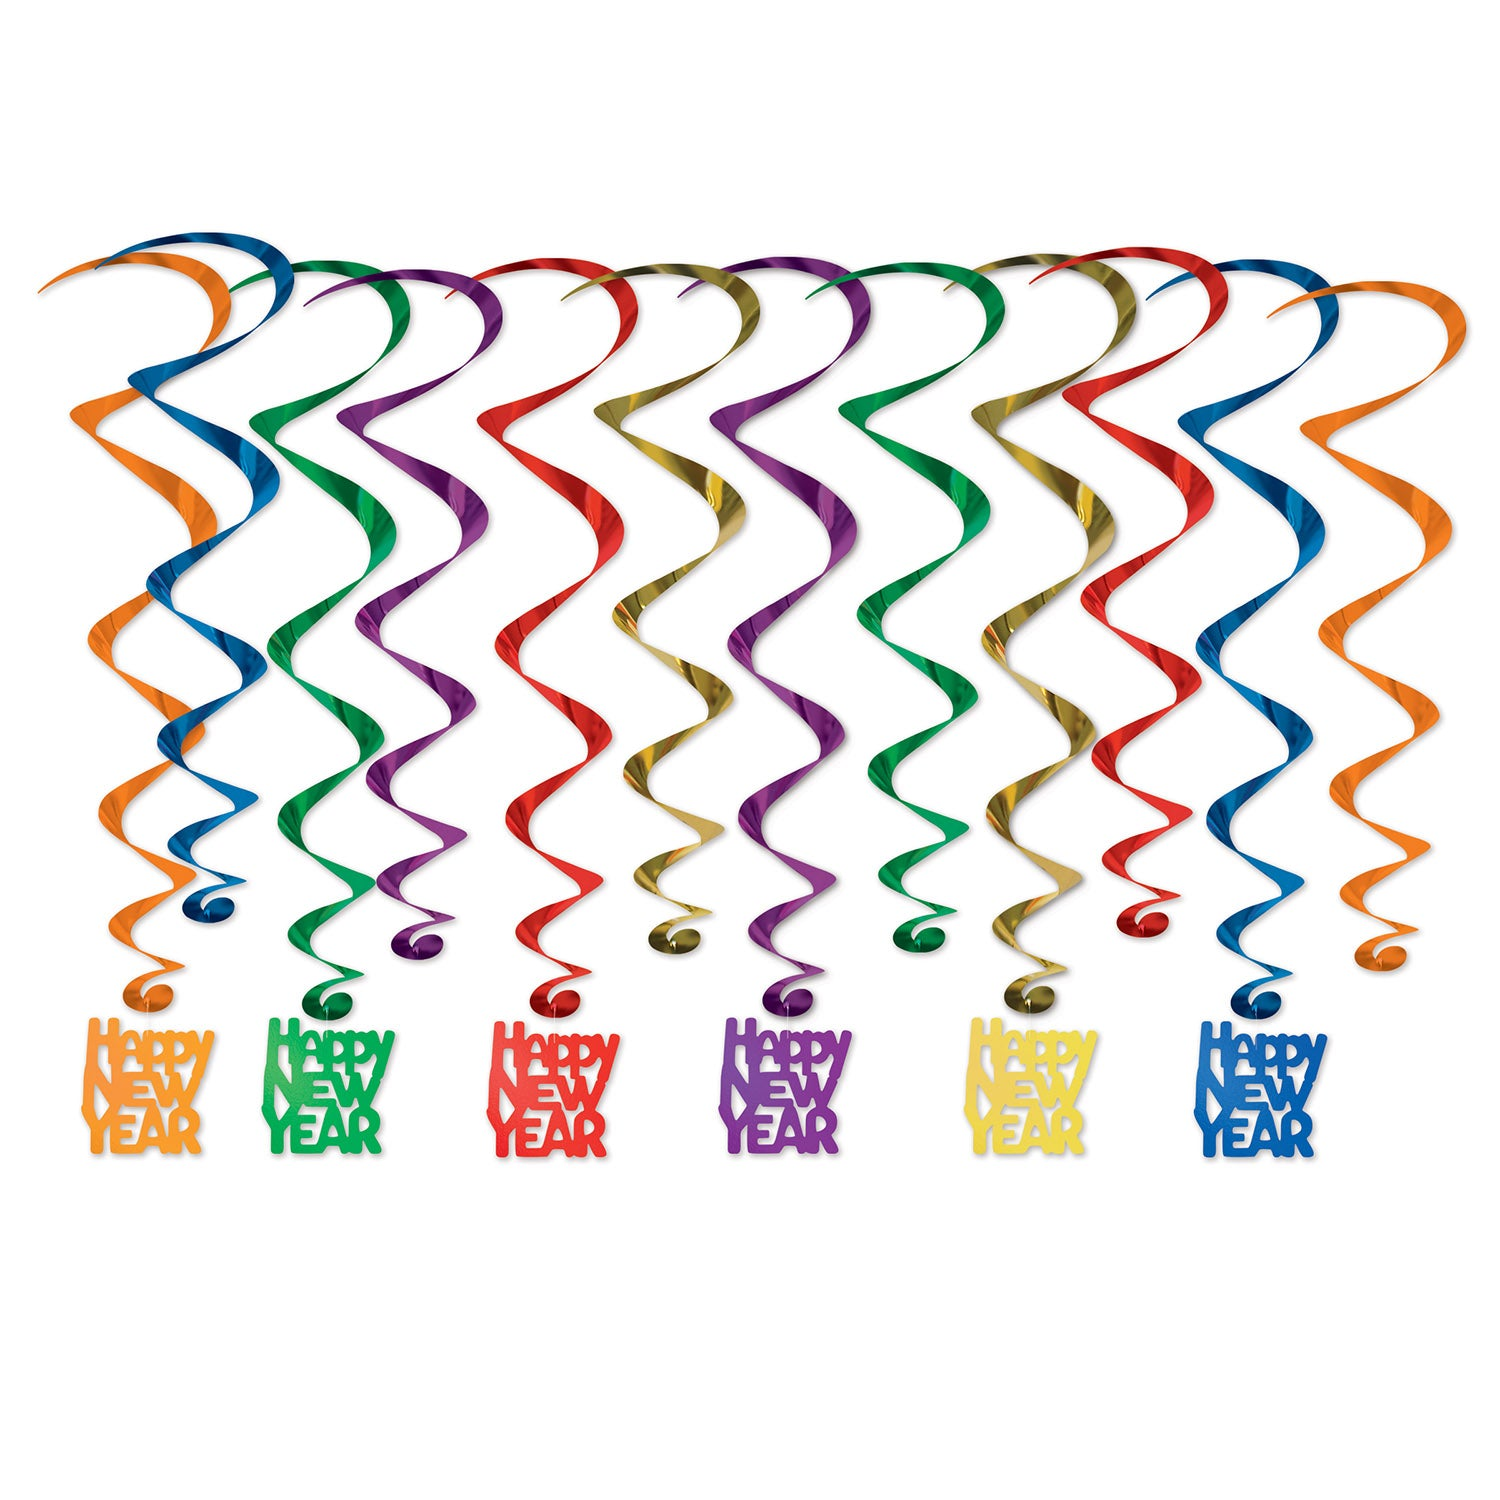 Happy New Year Whirls (12/Pkg) by Beistle - New Year's Eve Theme Decorations